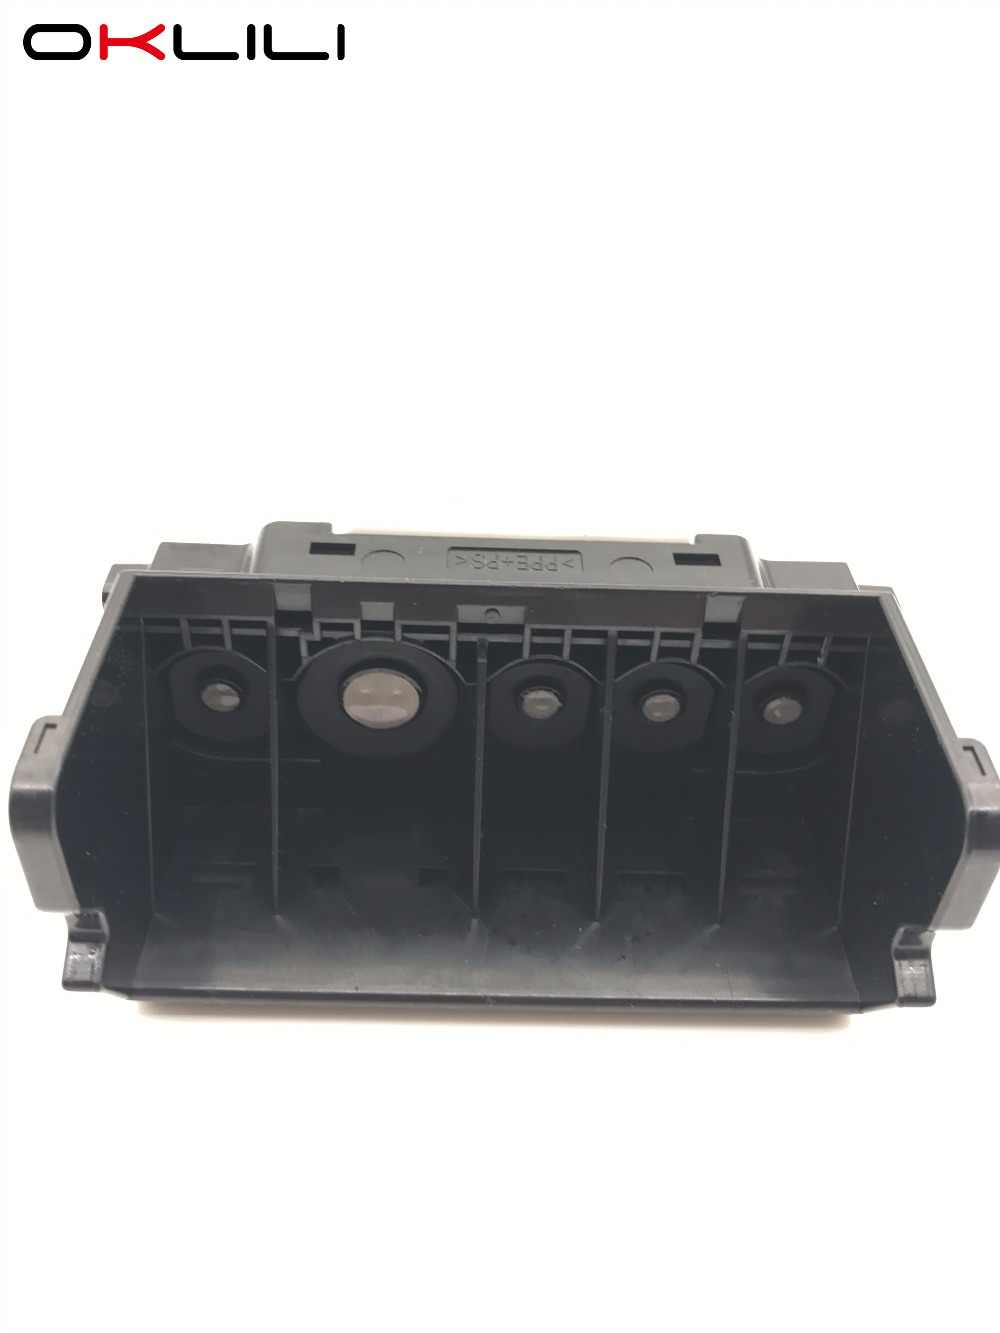 QY6-0080 Printhead Print Head Printer Kepala untuk Canon IP4820 IP4840 IP4850 IX6520 IX6550 MX715 MX885 MG5220 MG5250 MG5320 MG5350